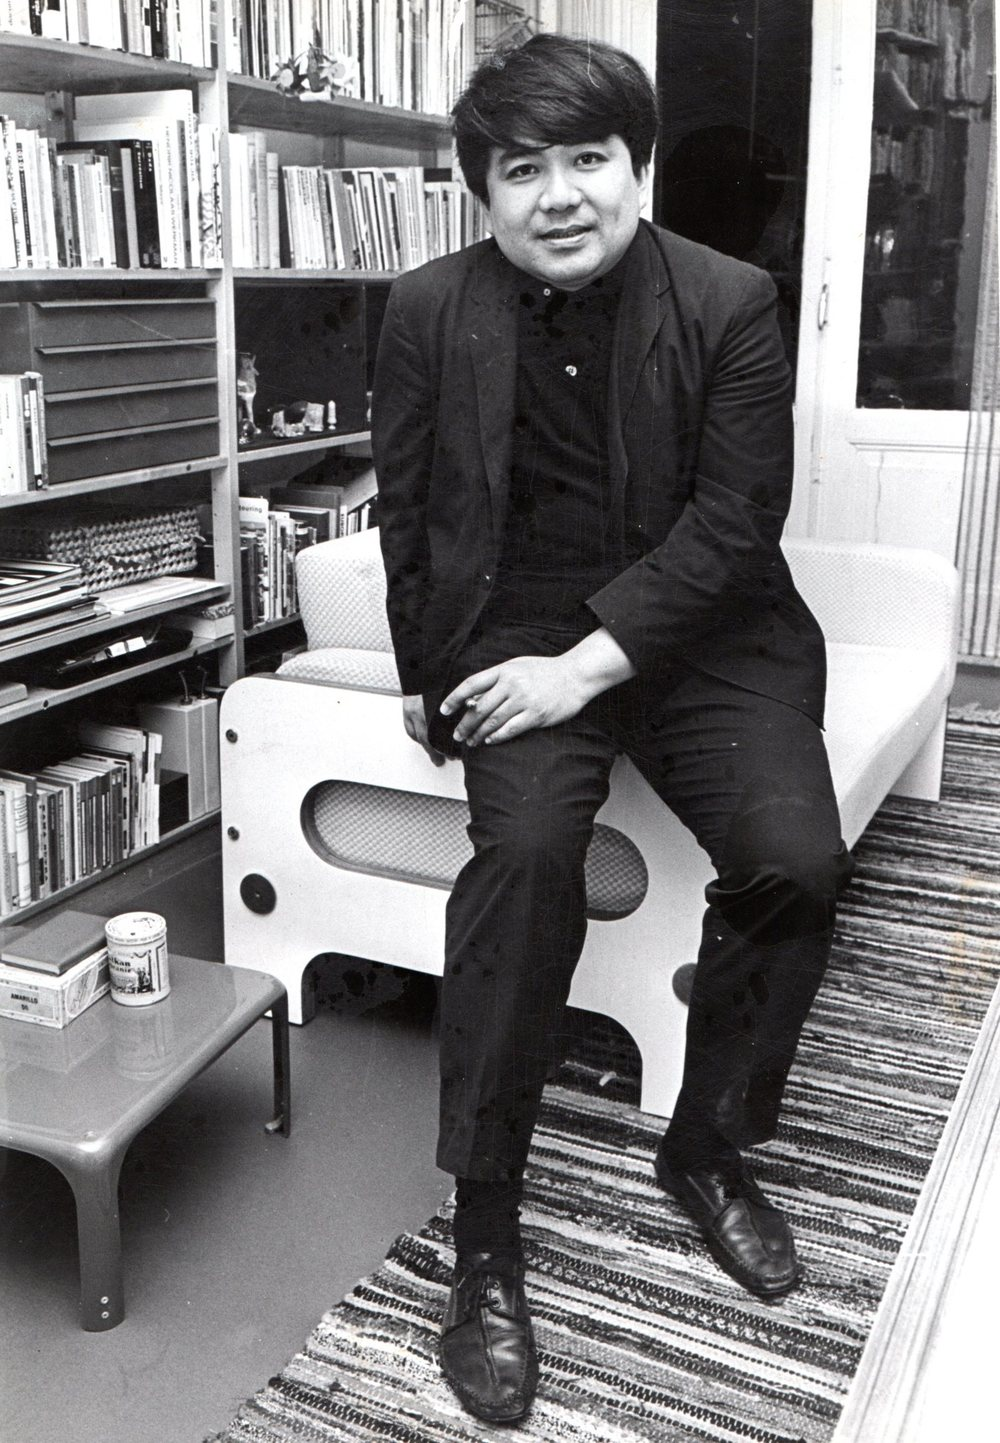 With sofa 115 in his living room. 1966